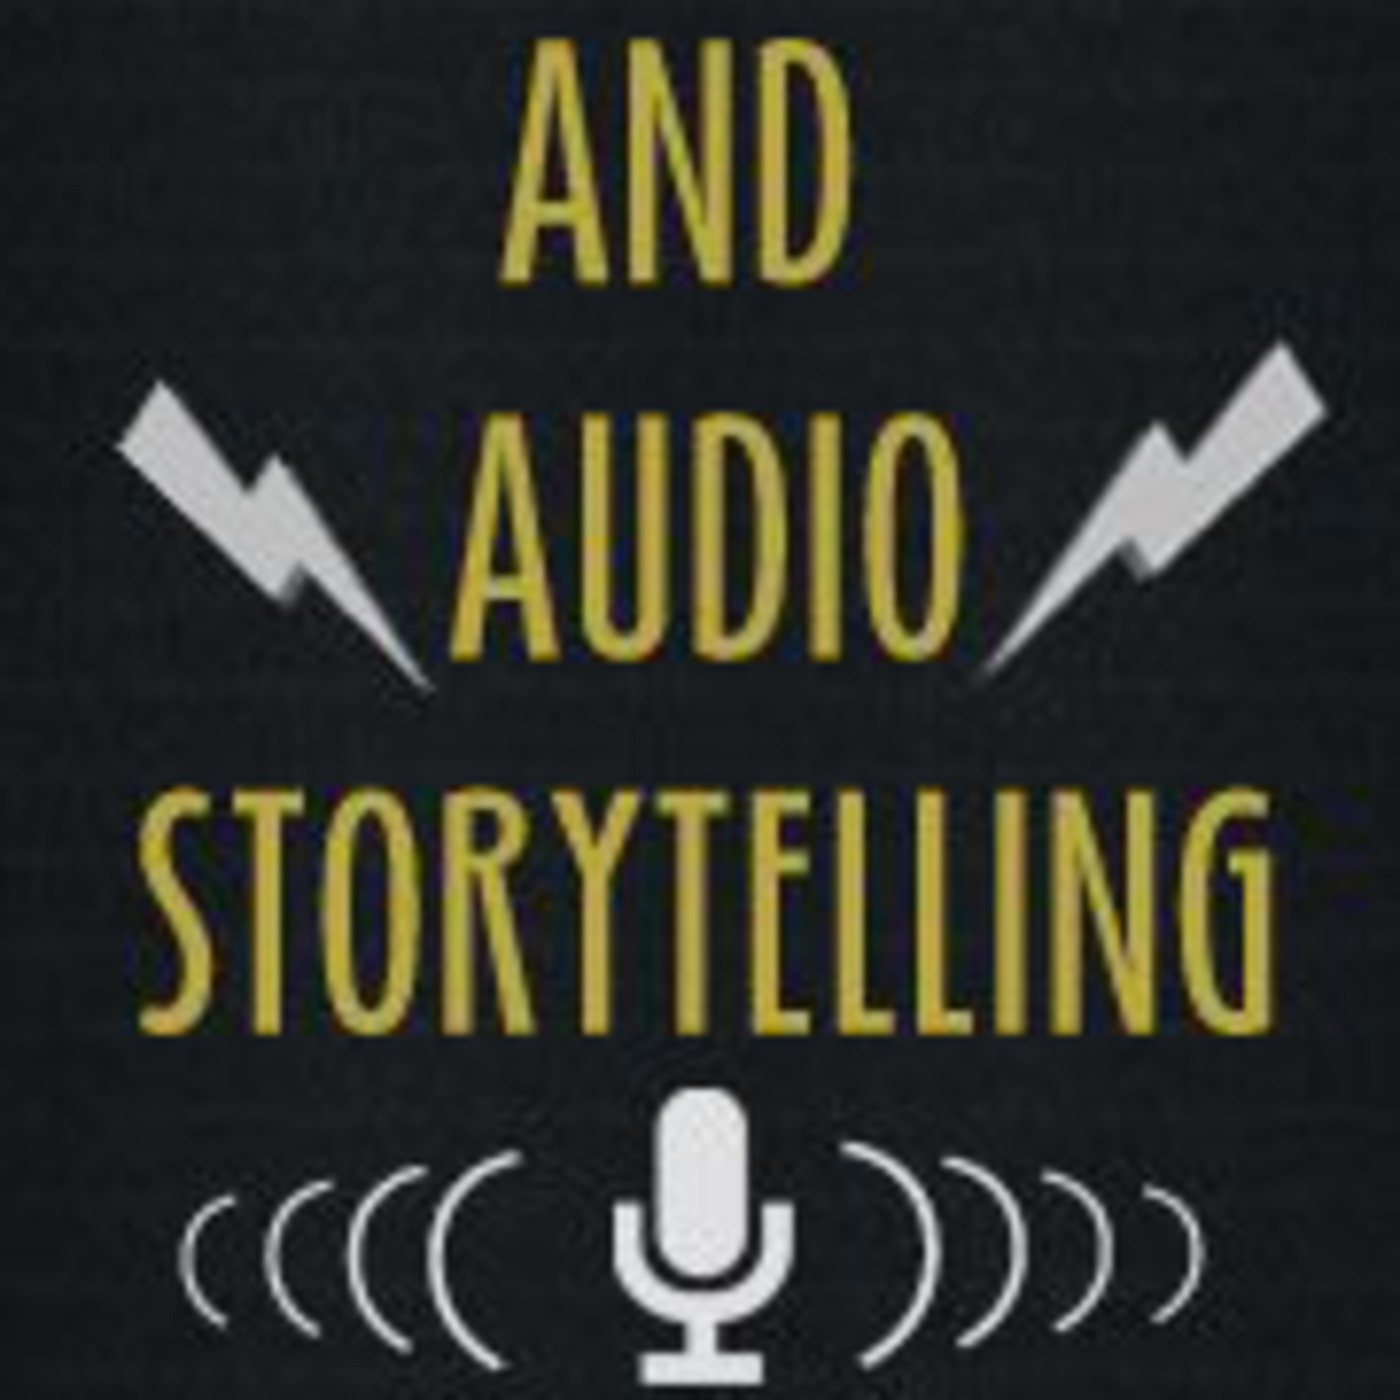 Sattya Podcasting and Audio Storytelling Workshop